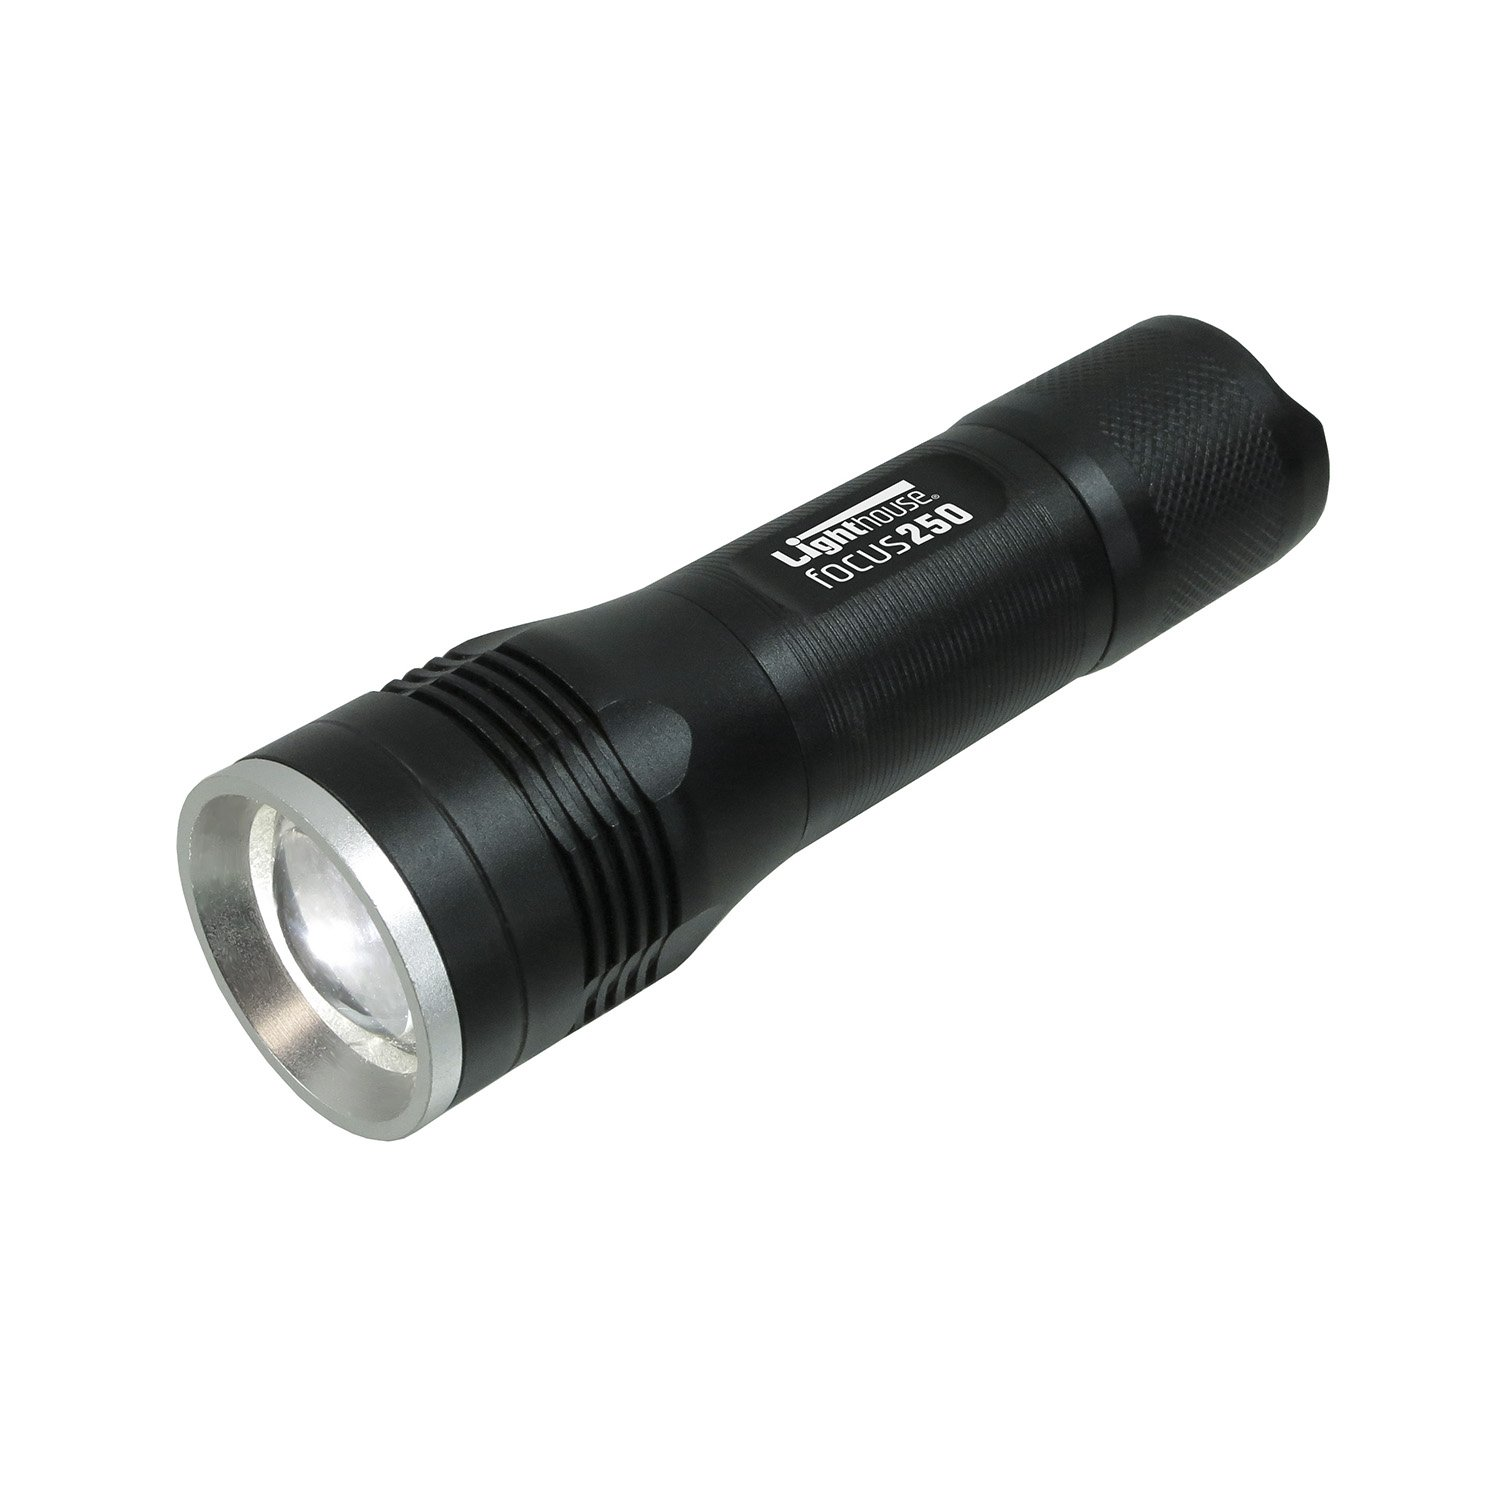 Lighthouse Torches L/HEFOC250 250 Lumens AAA Elite High Performance LED Torch, Blue